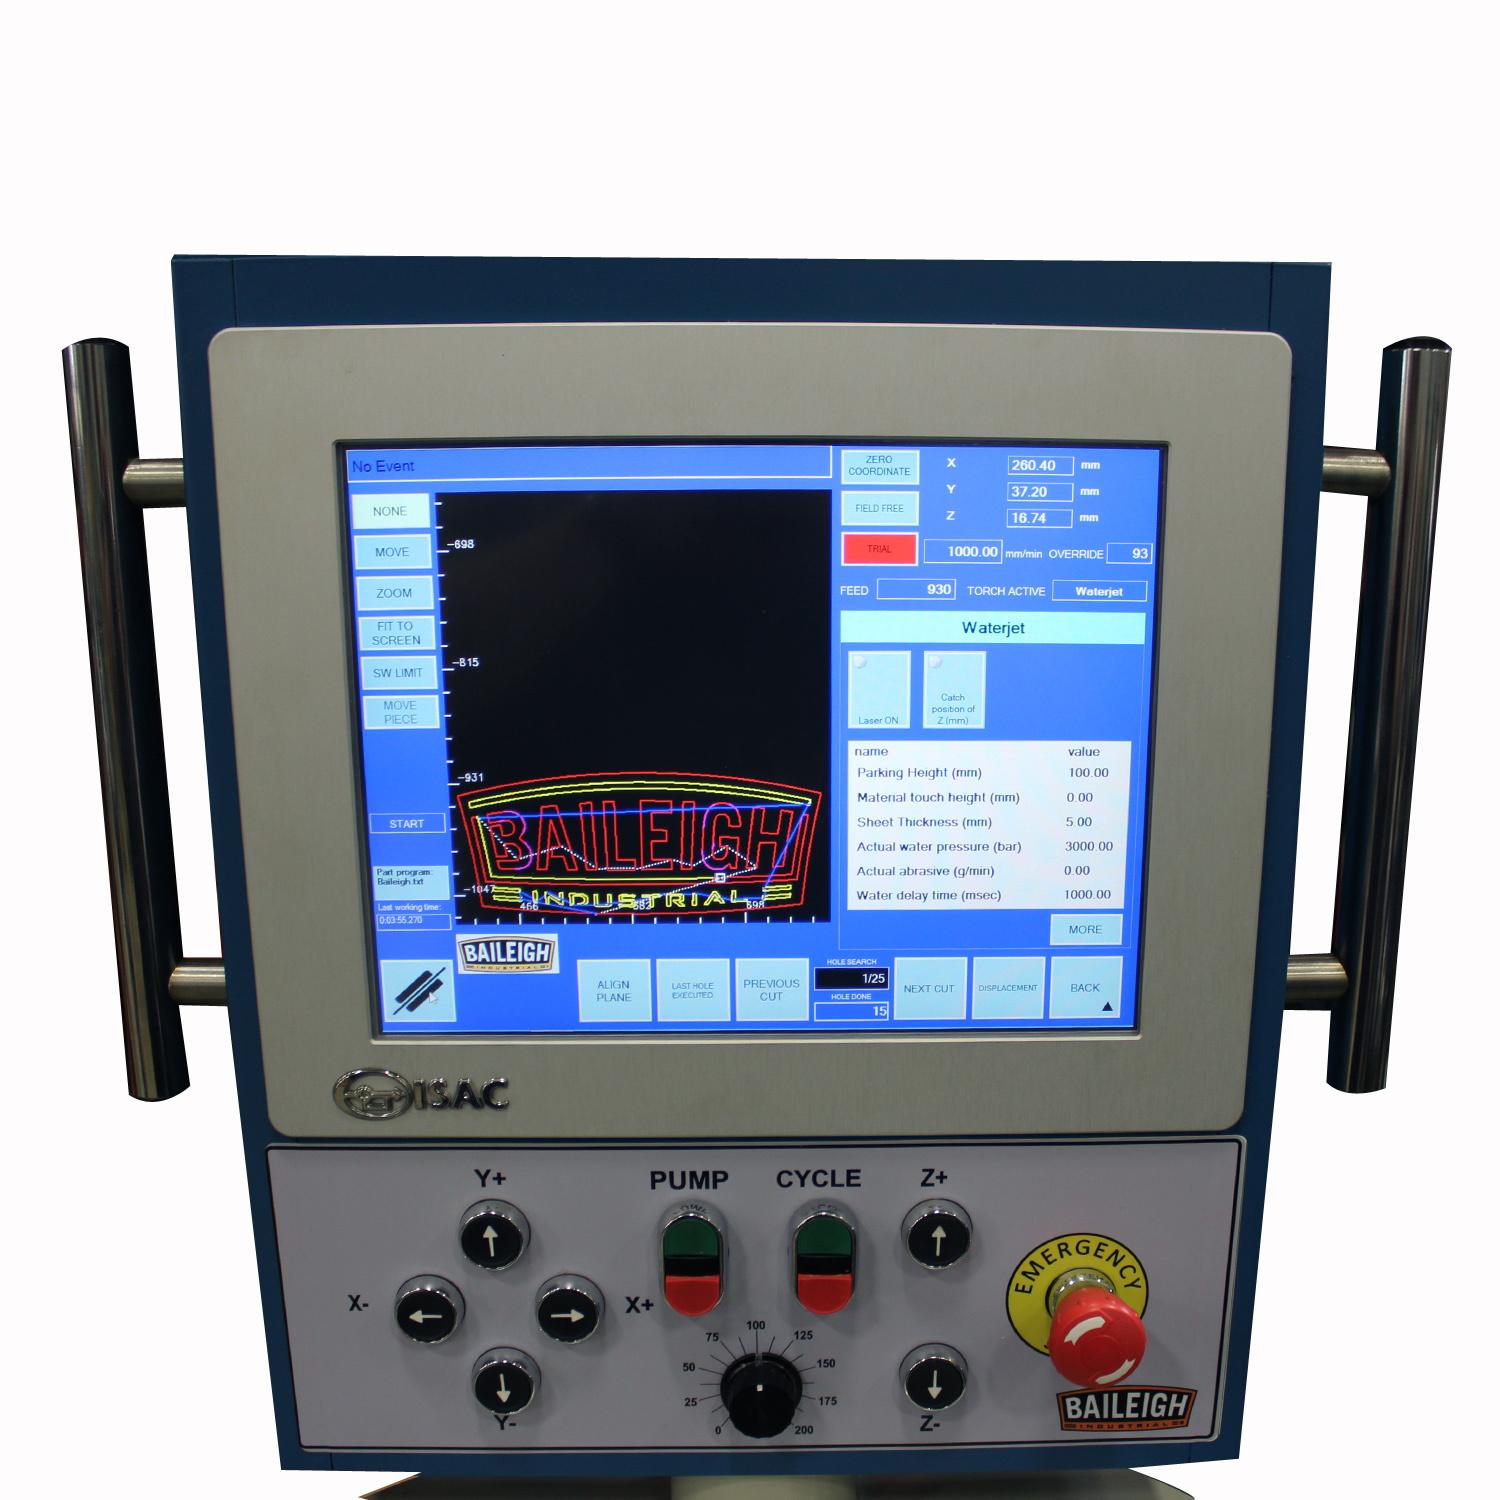 water jet wj cnc industrial industrial direct drive pump touchscreen